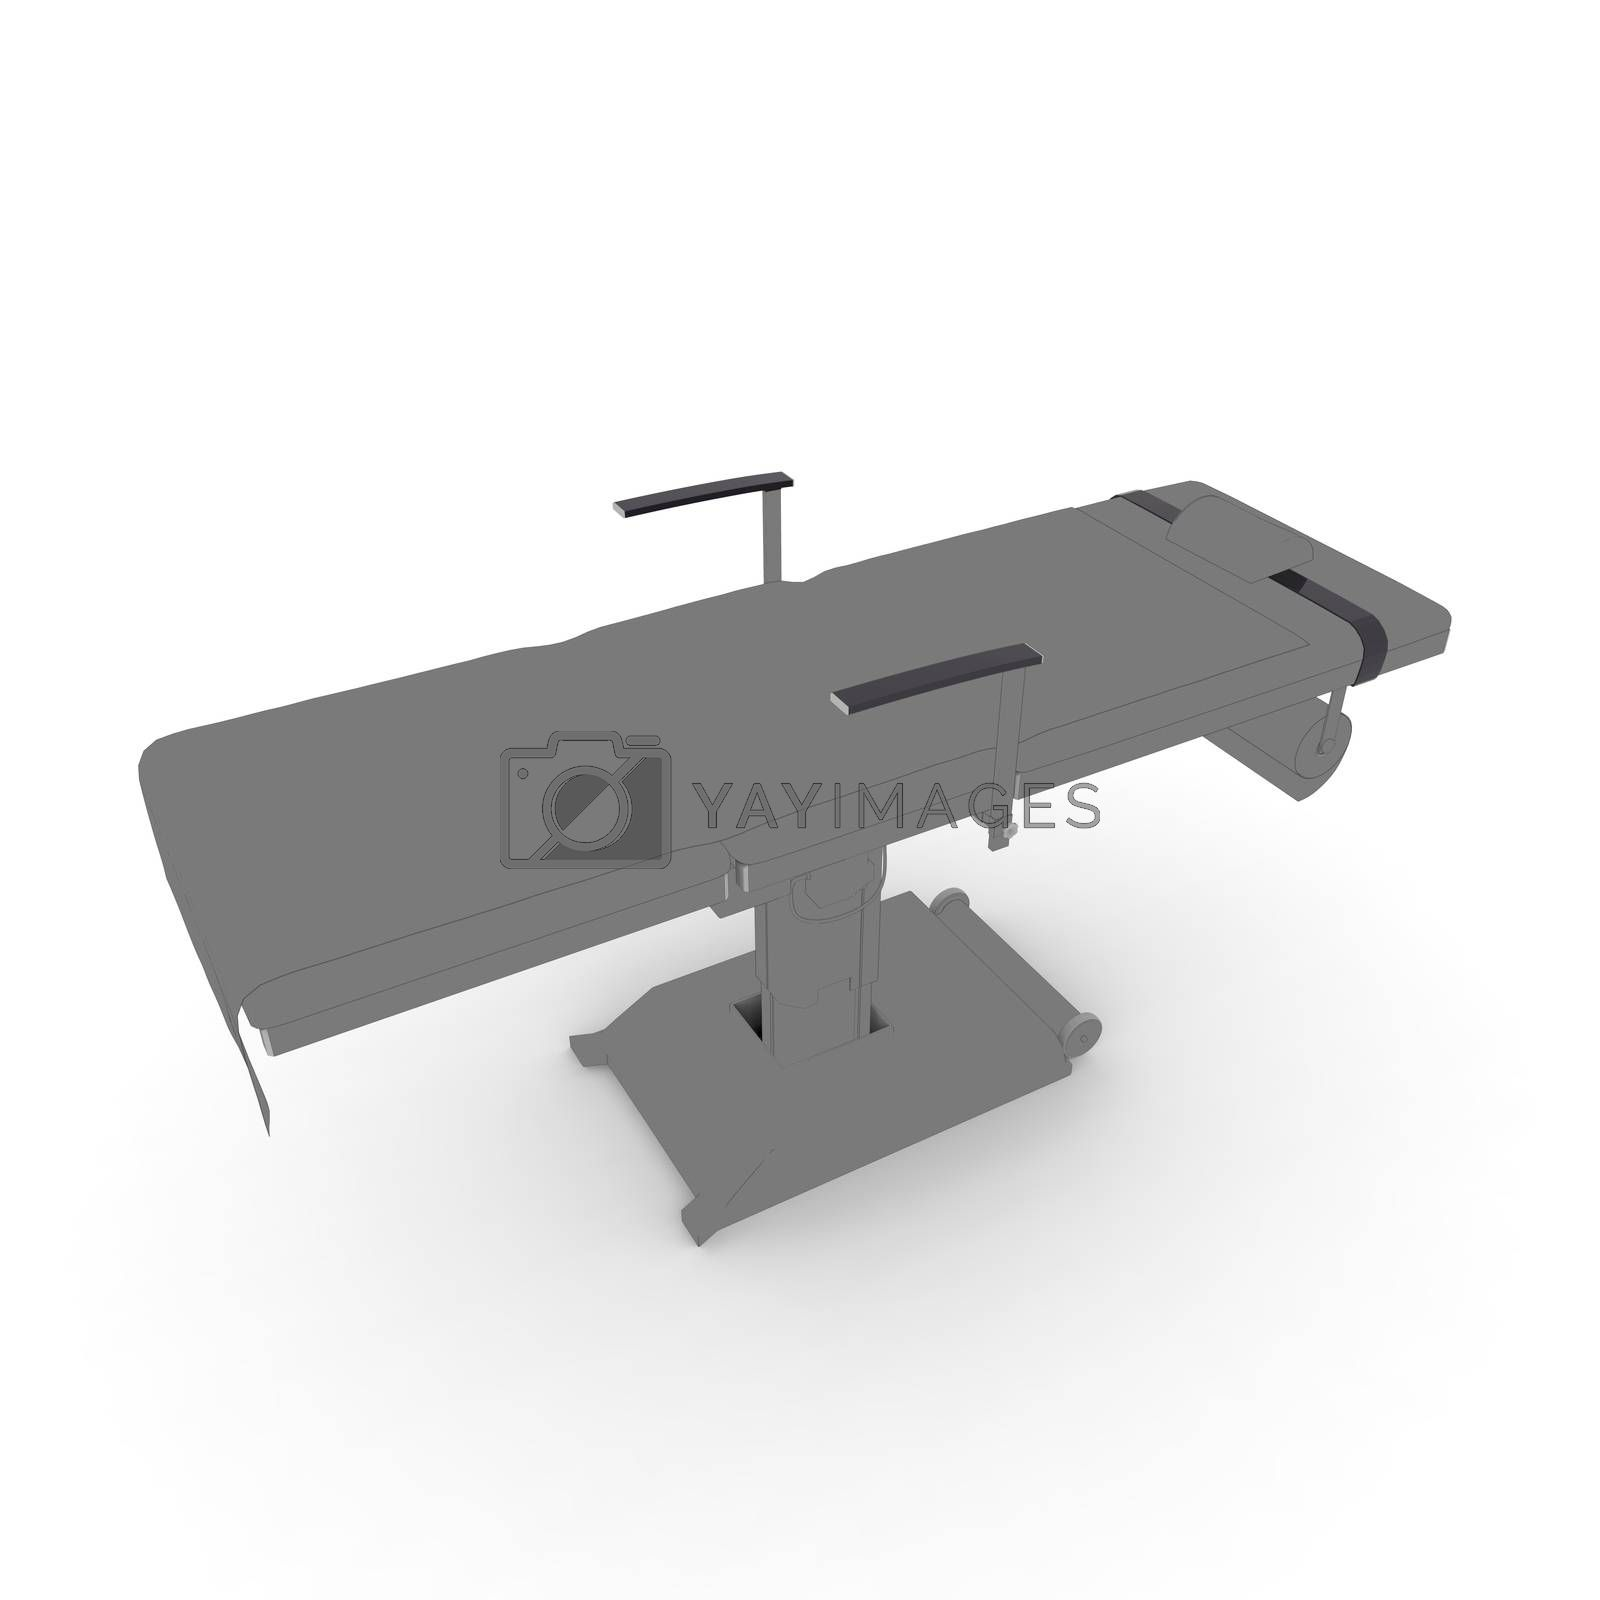 medical table on a white background by totuss